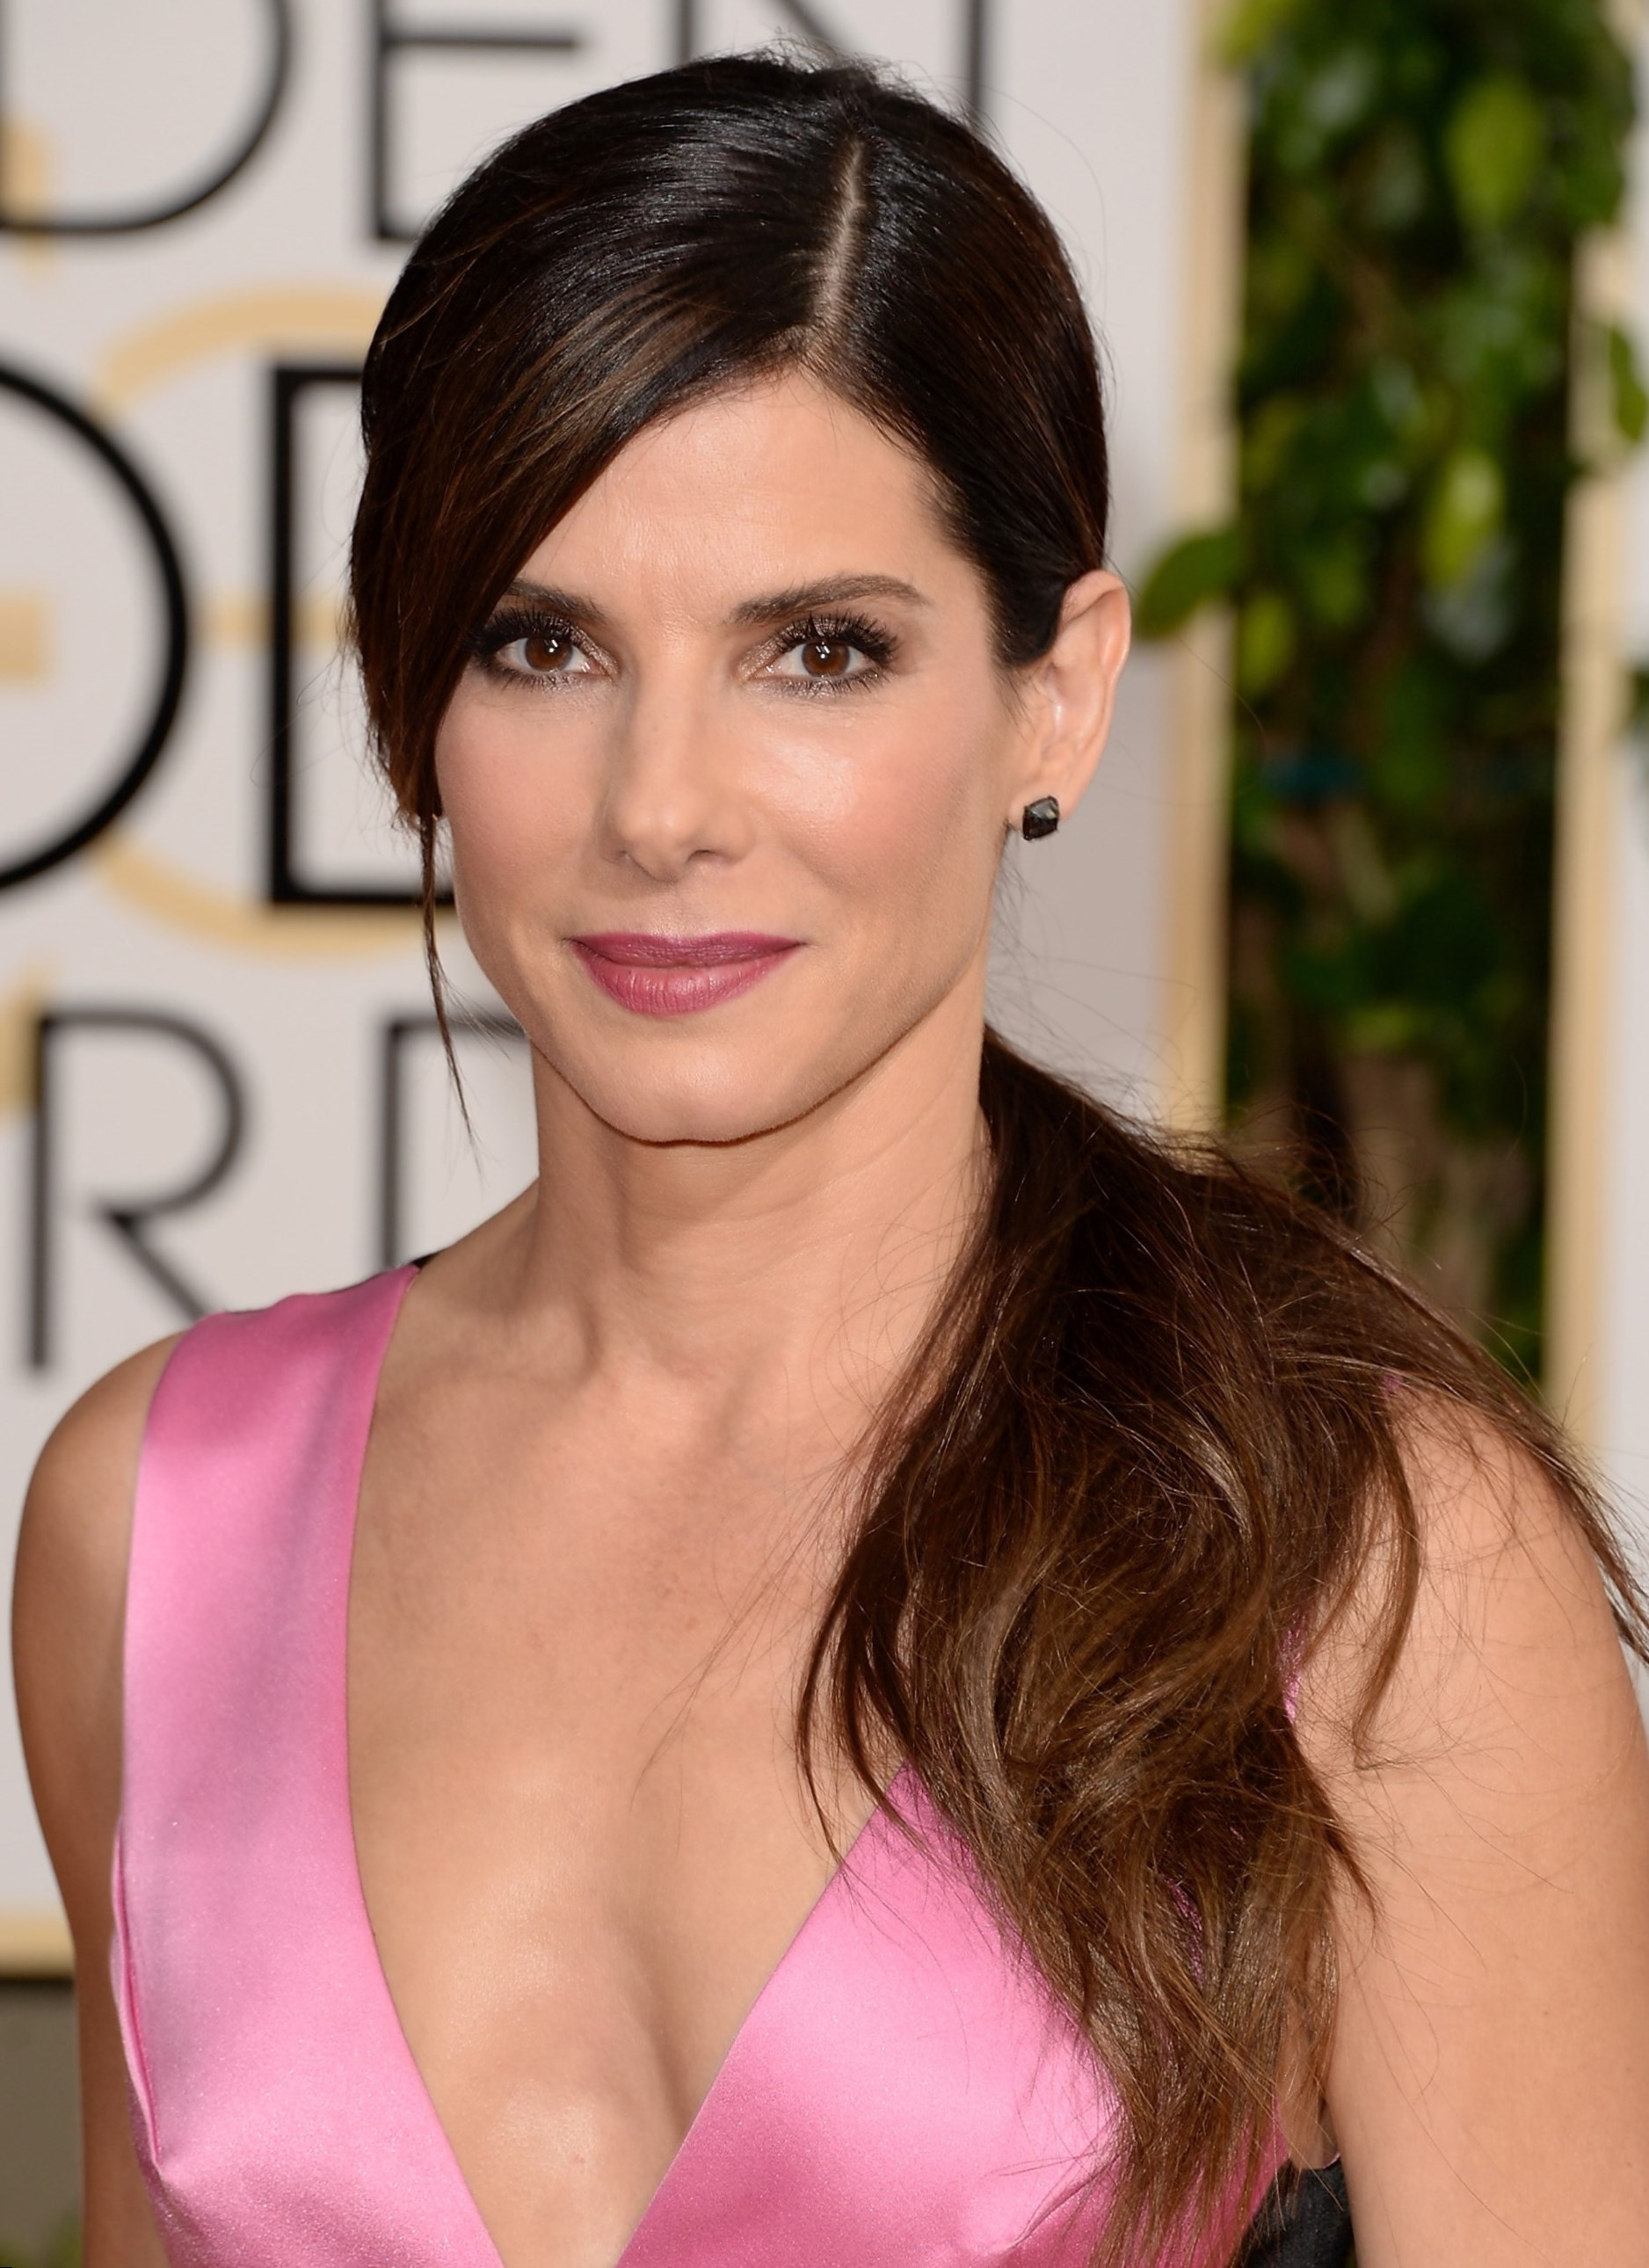 Sandra Bullock celebrity net worth - salary, house, car